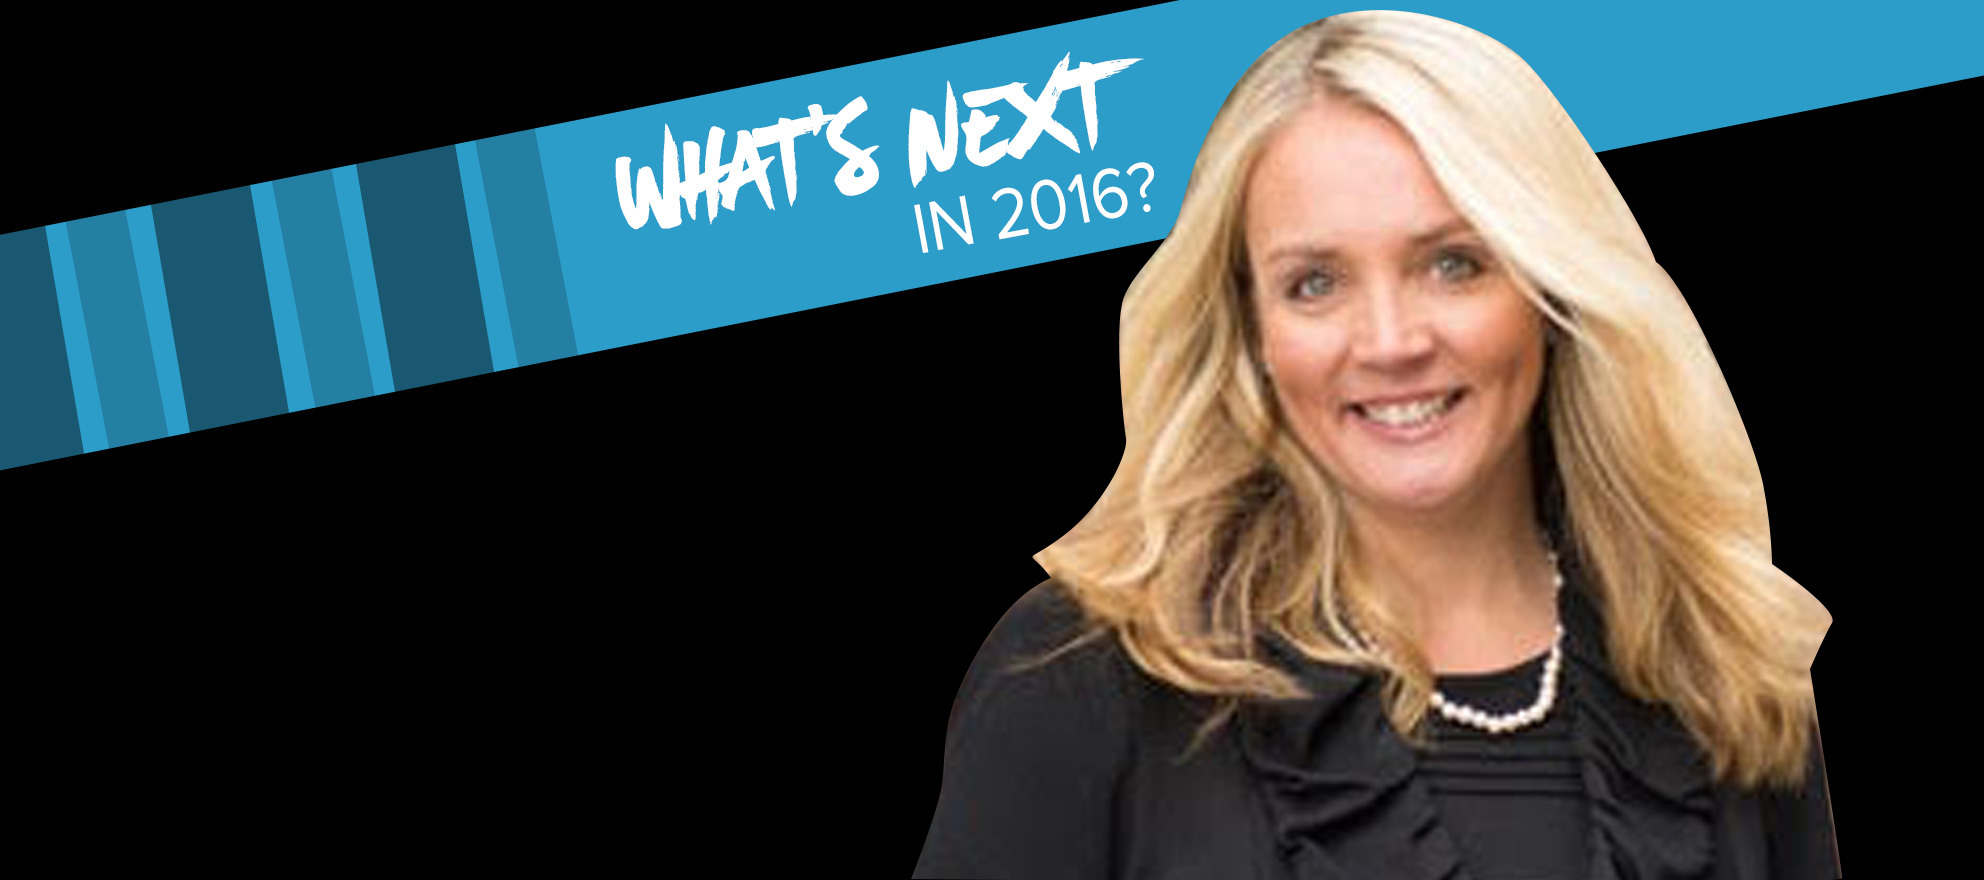 Ginger Wilcox on what's next in 2016